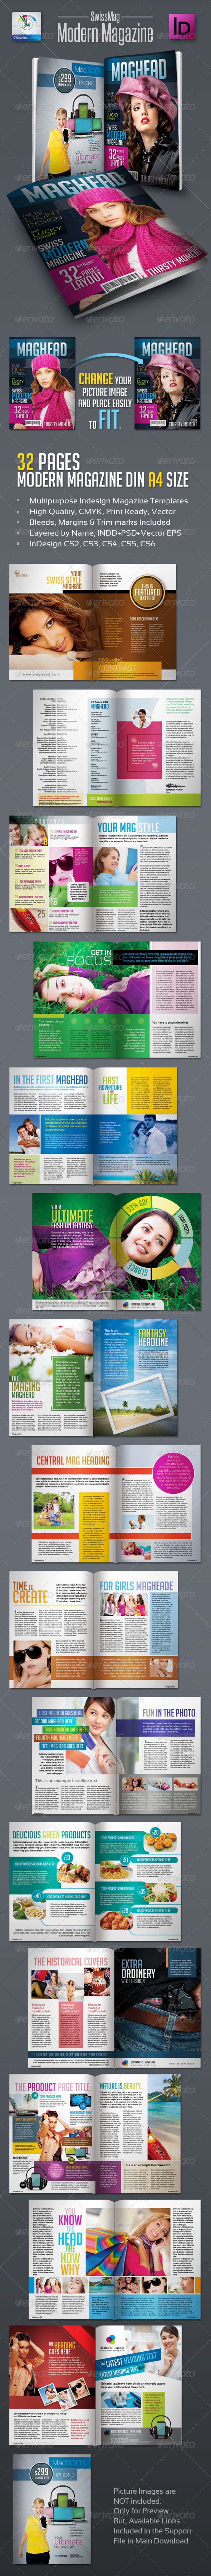 GraphicRiver SwissMag Modern Magazine Templates 32pages 2579872